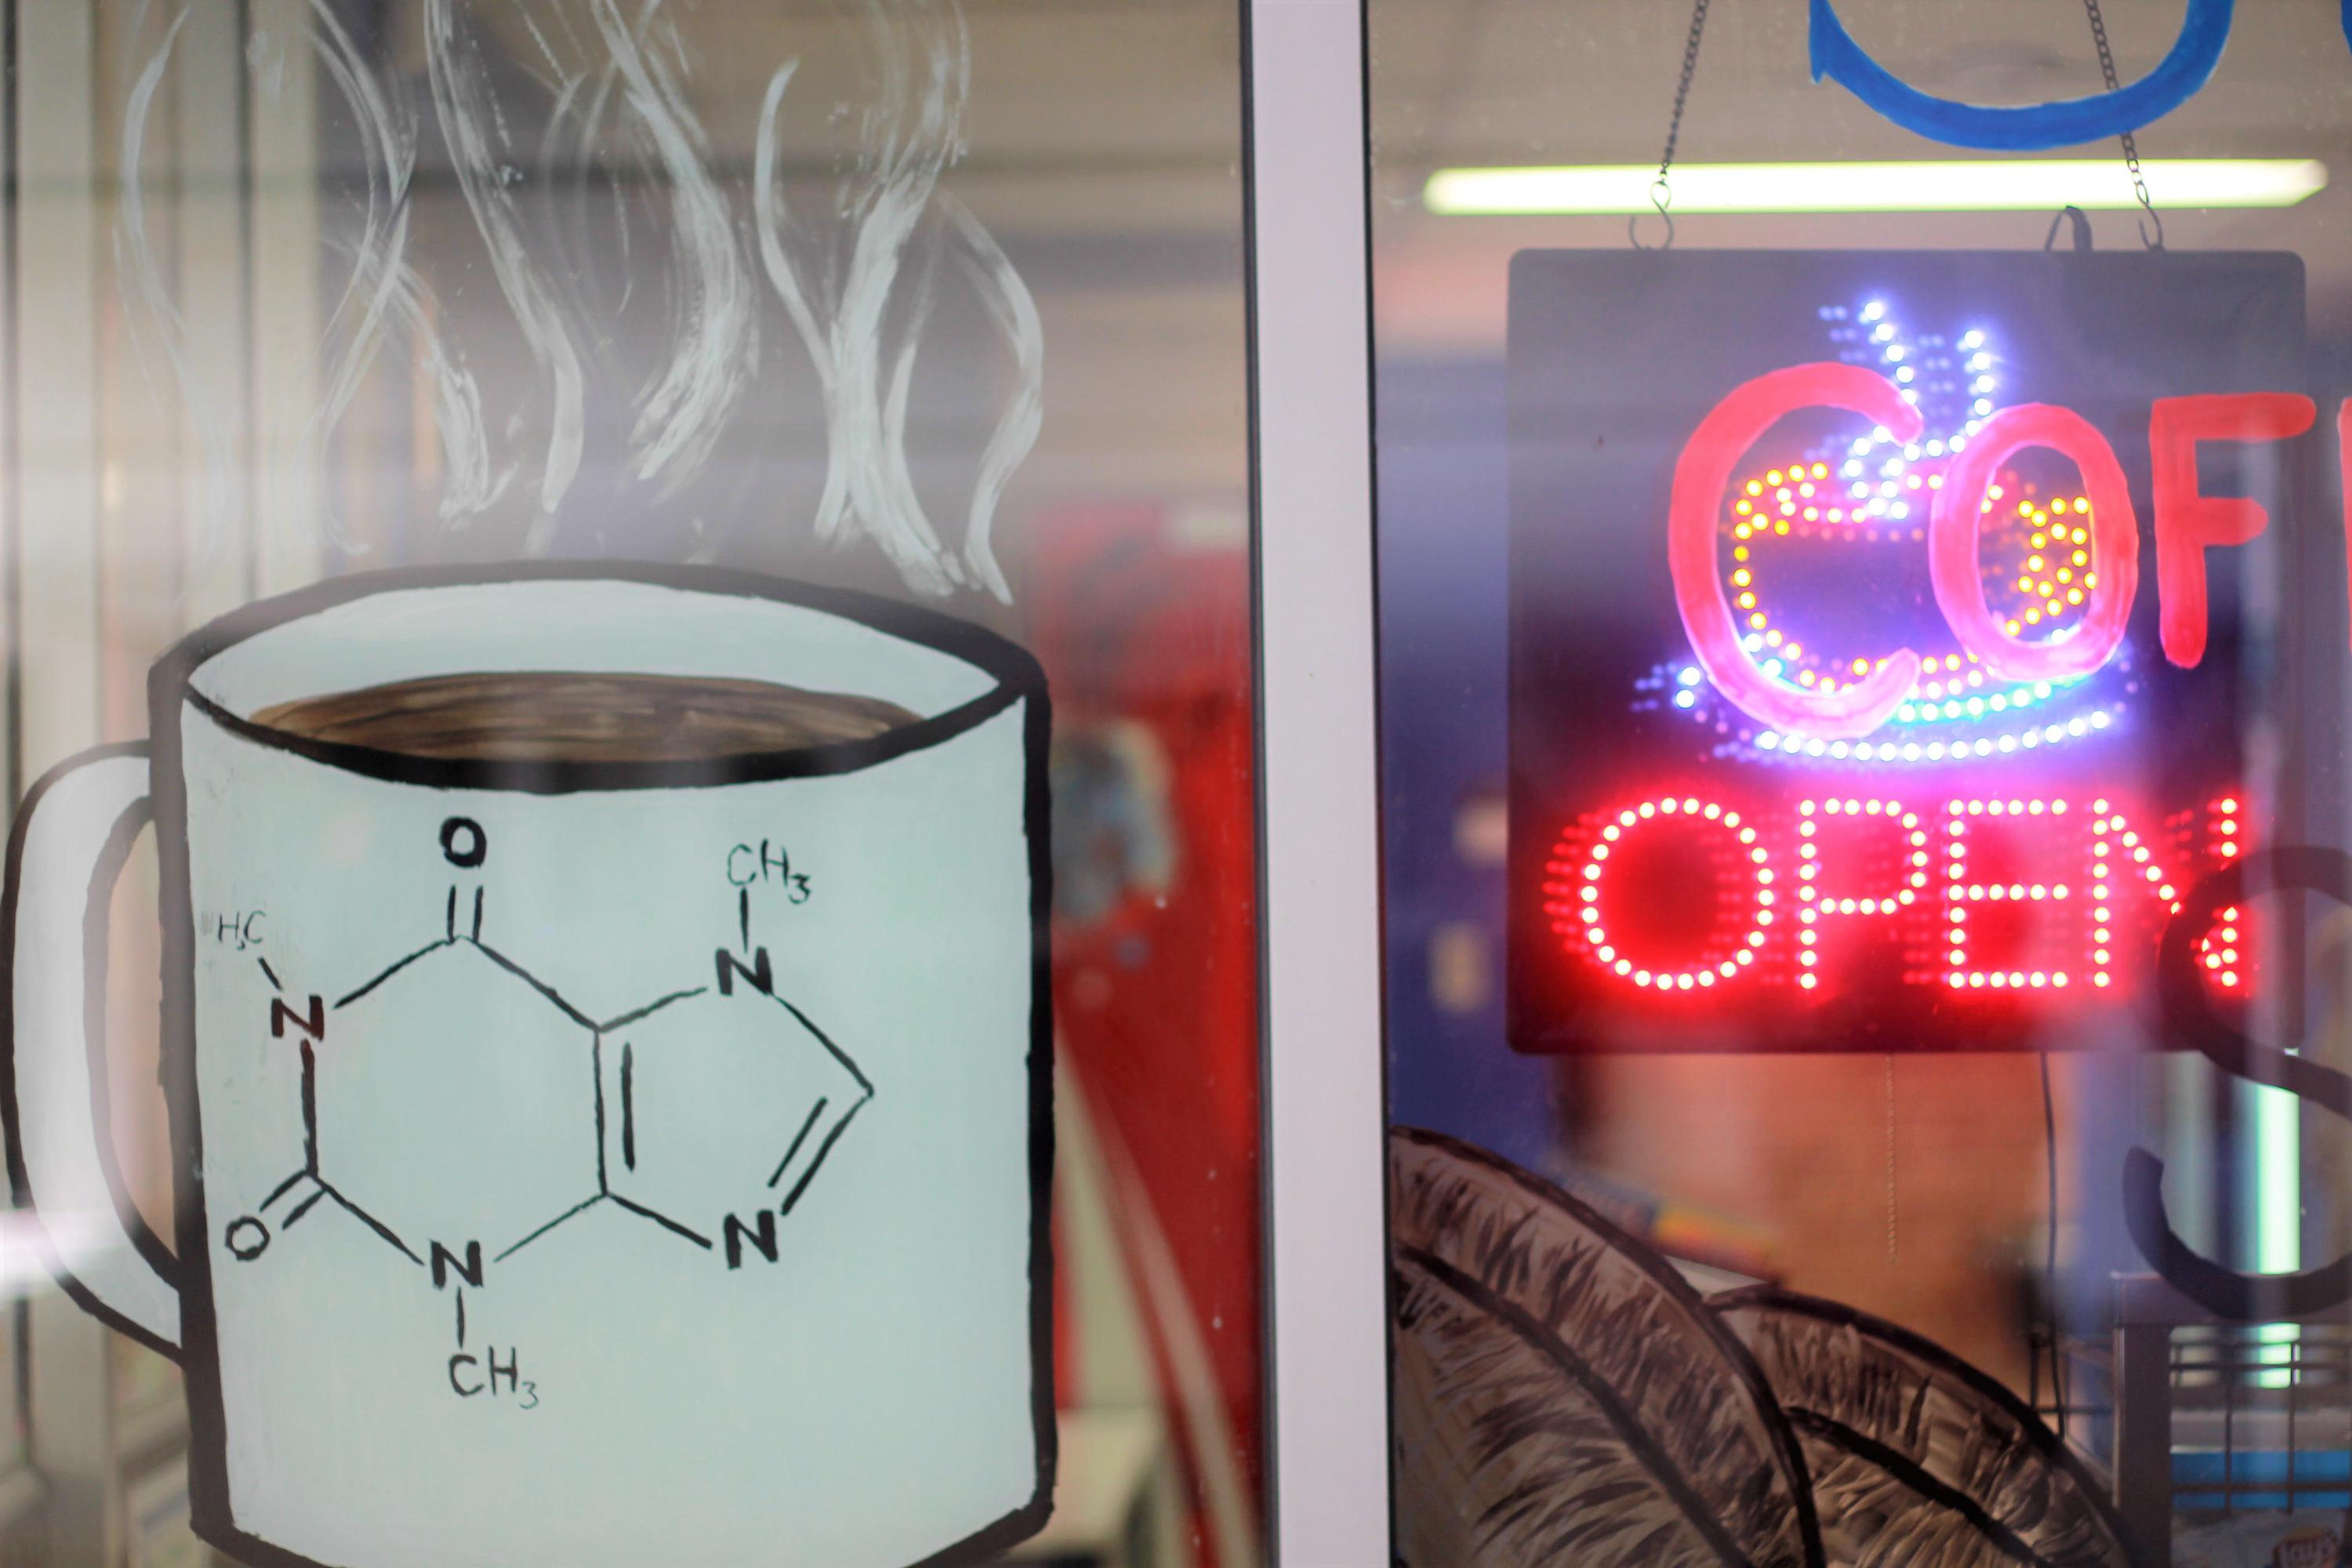 Science CnD Window art